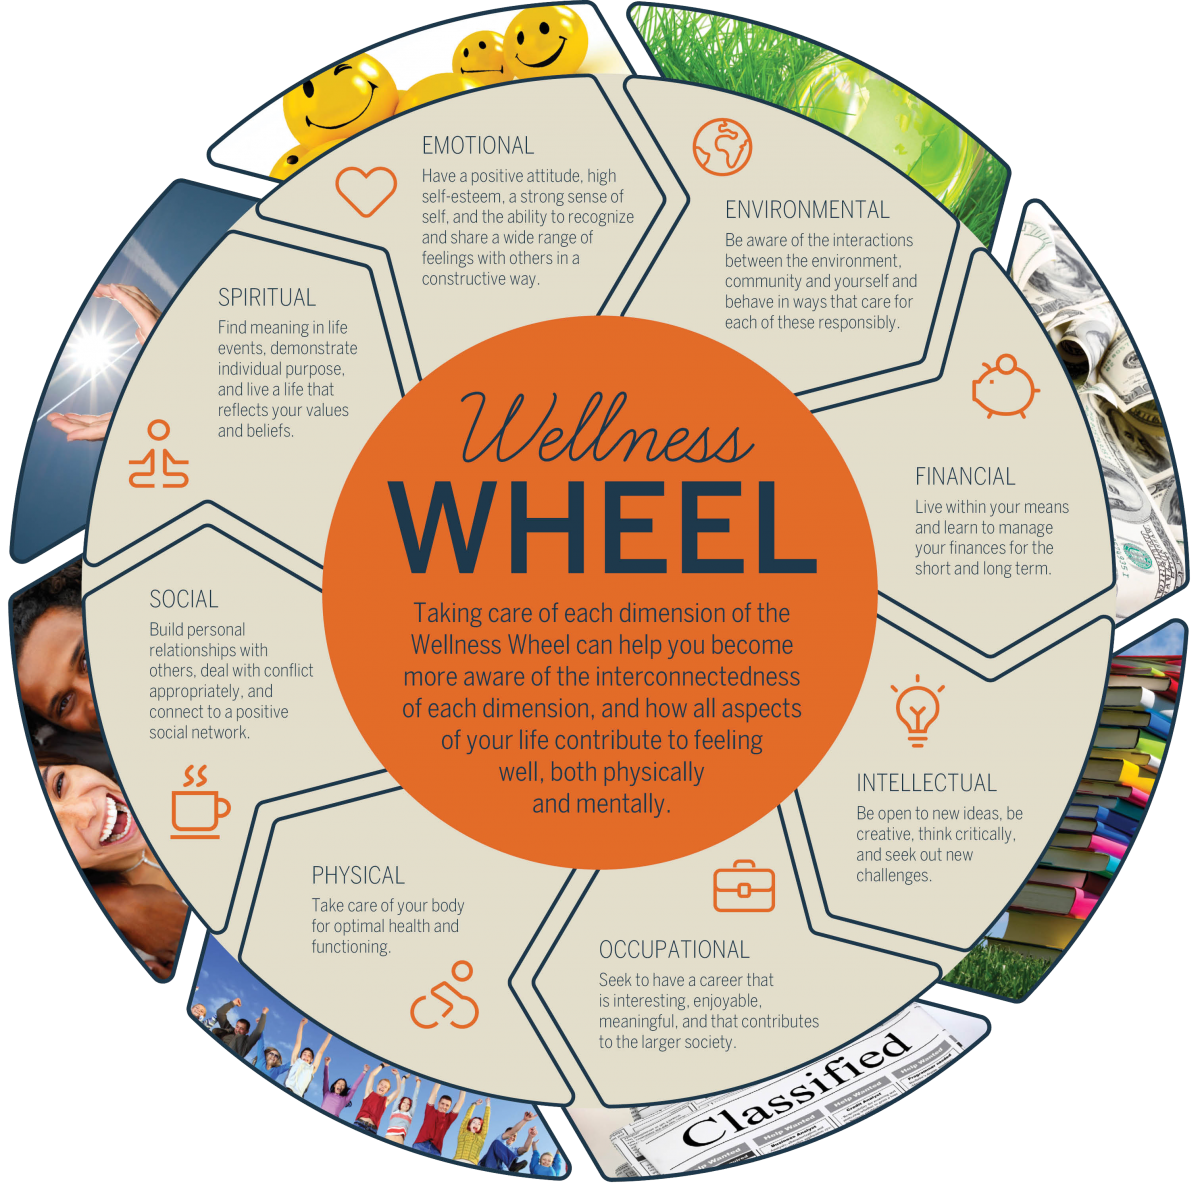 Worksheets Wellness Wheel Worksheet thread wellness wheel for your review use as a guide and make sure to take care of each dimension psy